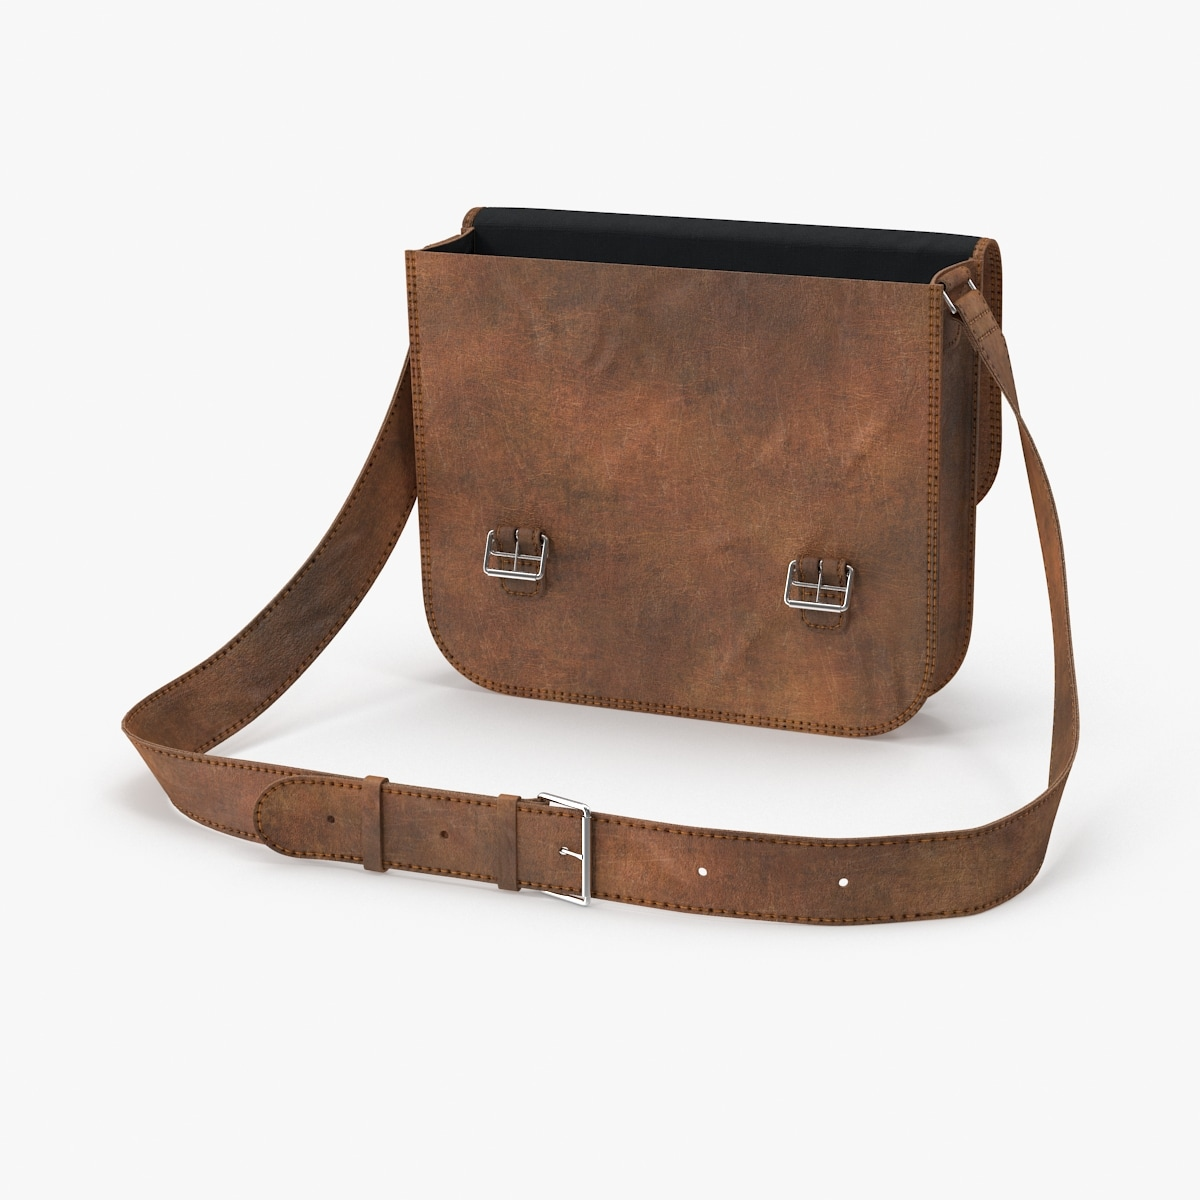 3d open leather satchel model